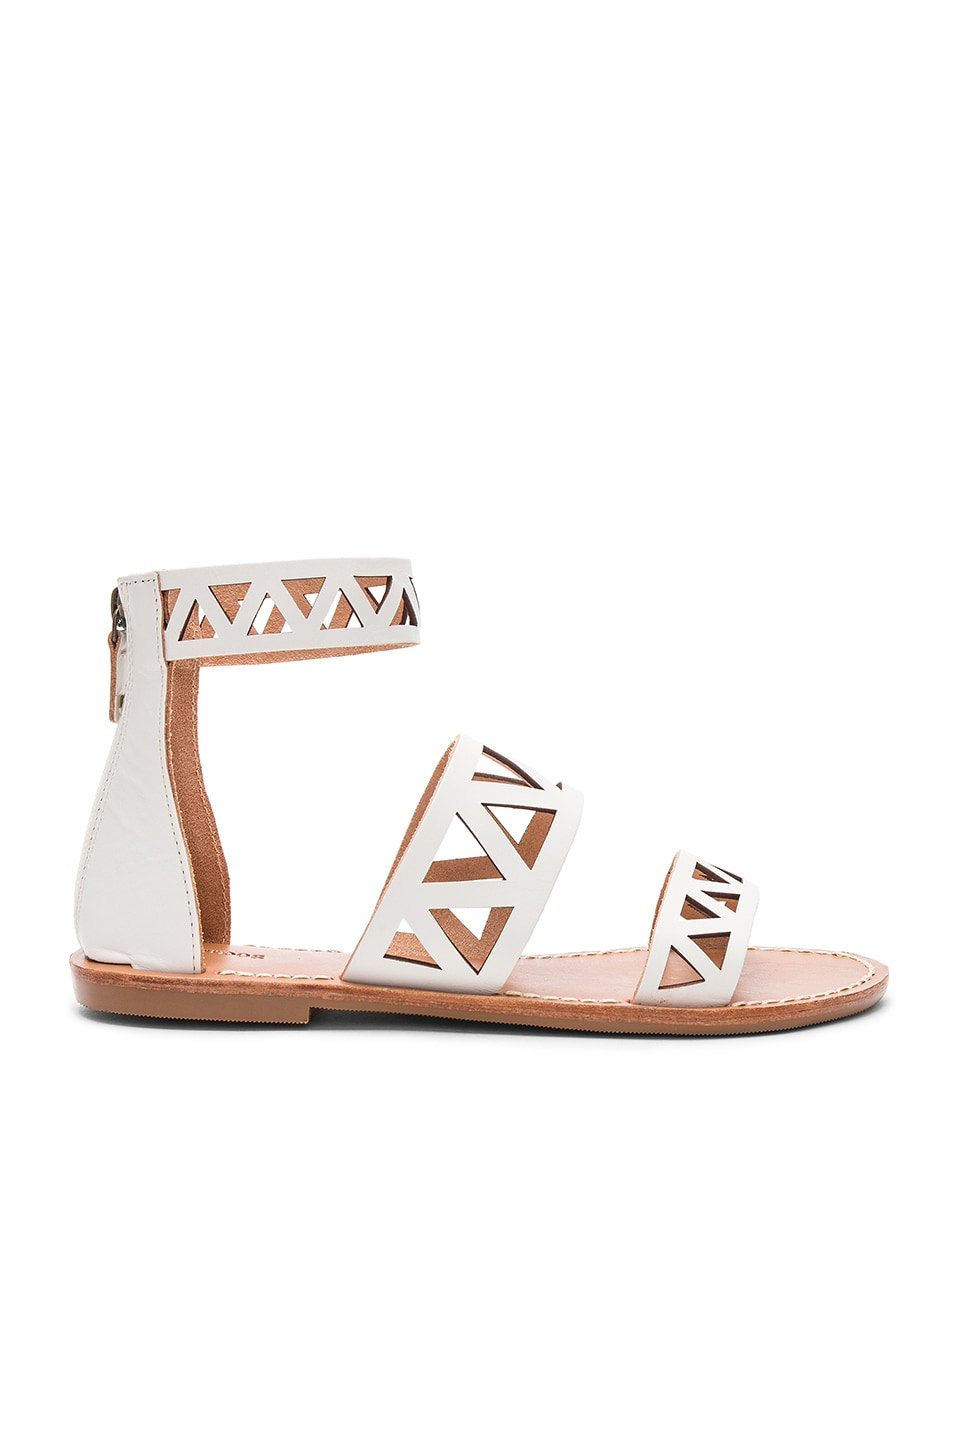 Geo Laser Cut Band Sandal by Soludos